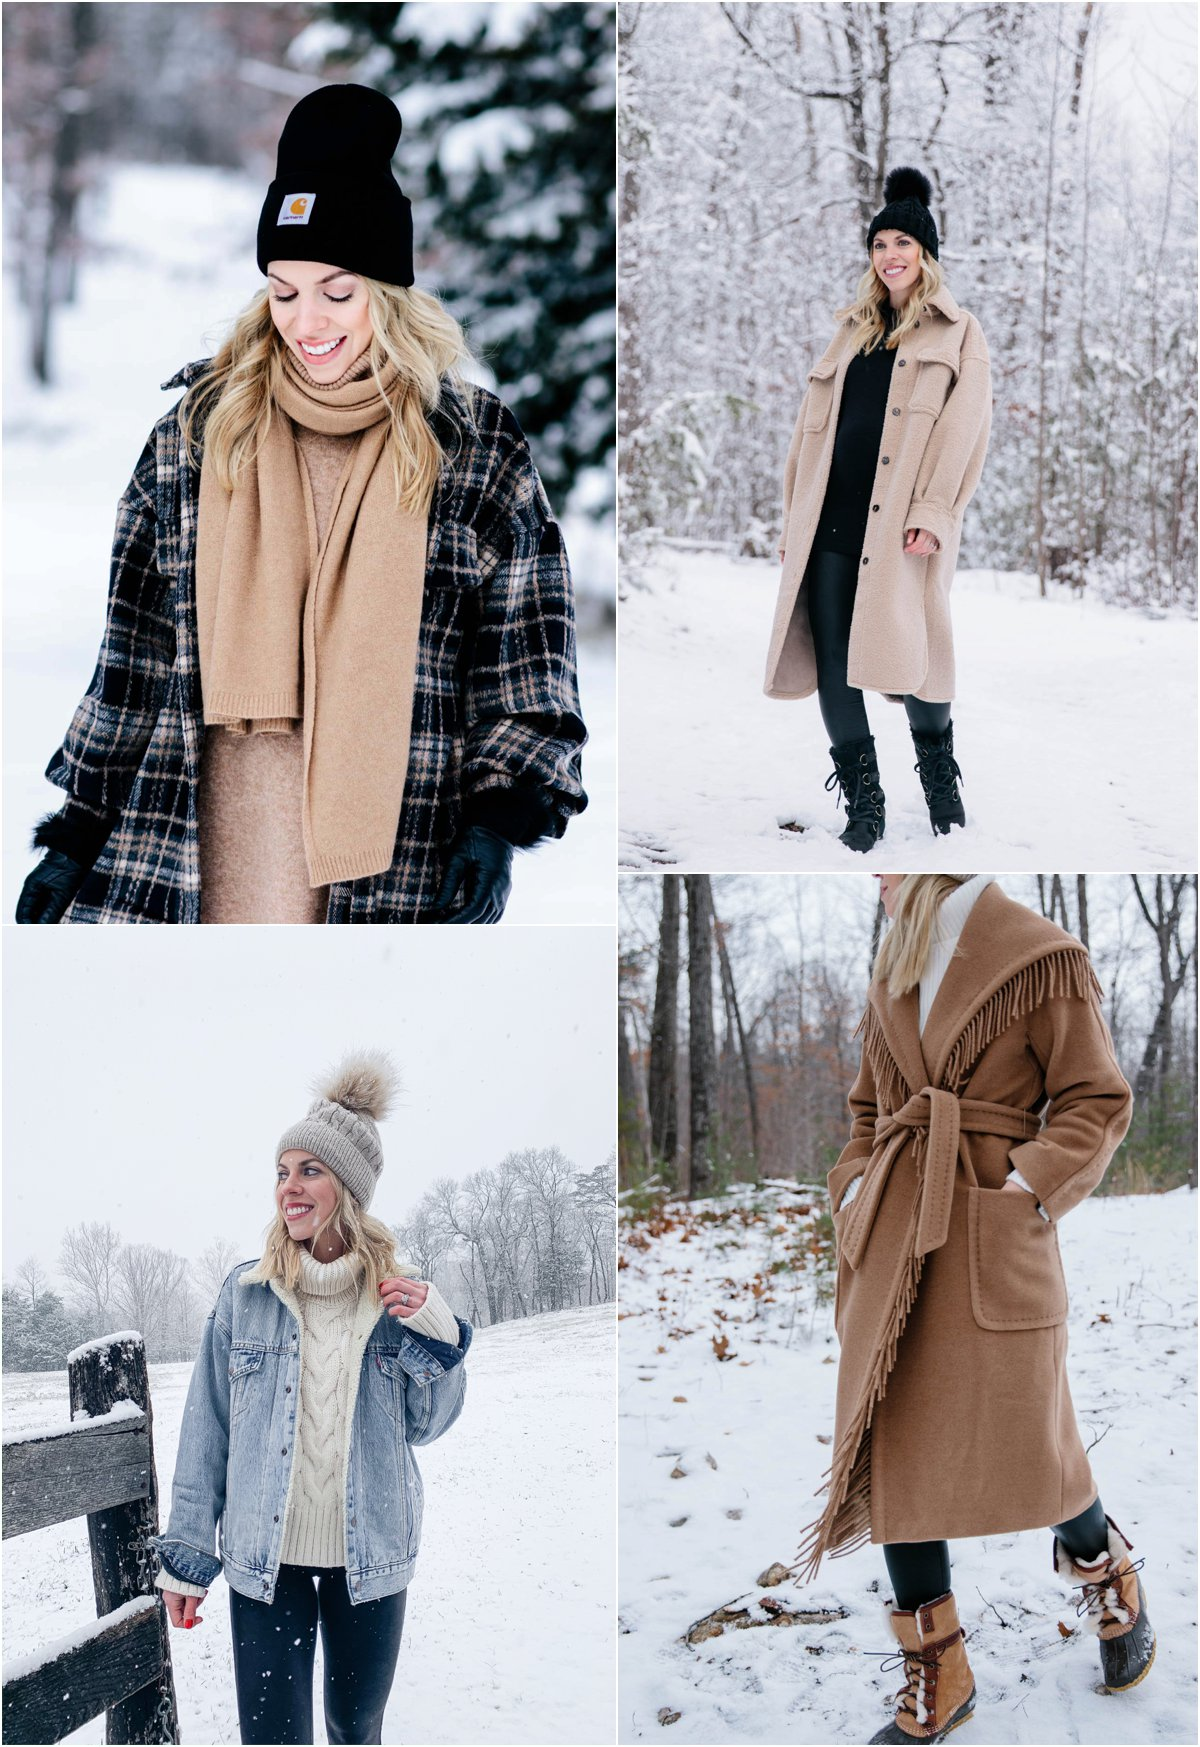 Meagan Brandon fashion blogger of Meagan's Moda shares ways to look stylish in the snow, chic snow day outfits